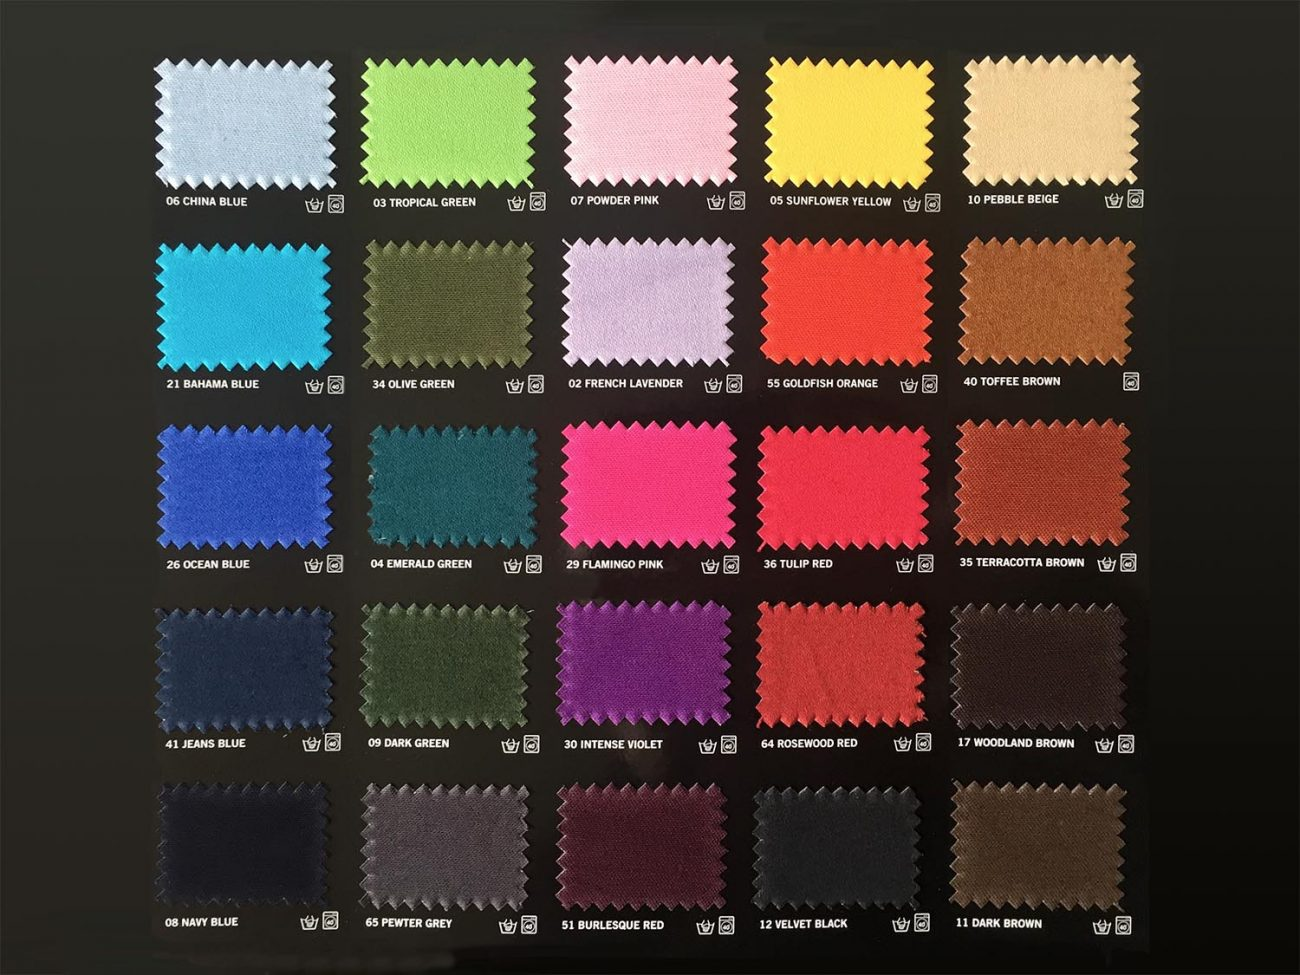 Dylon Dyes Shade Card